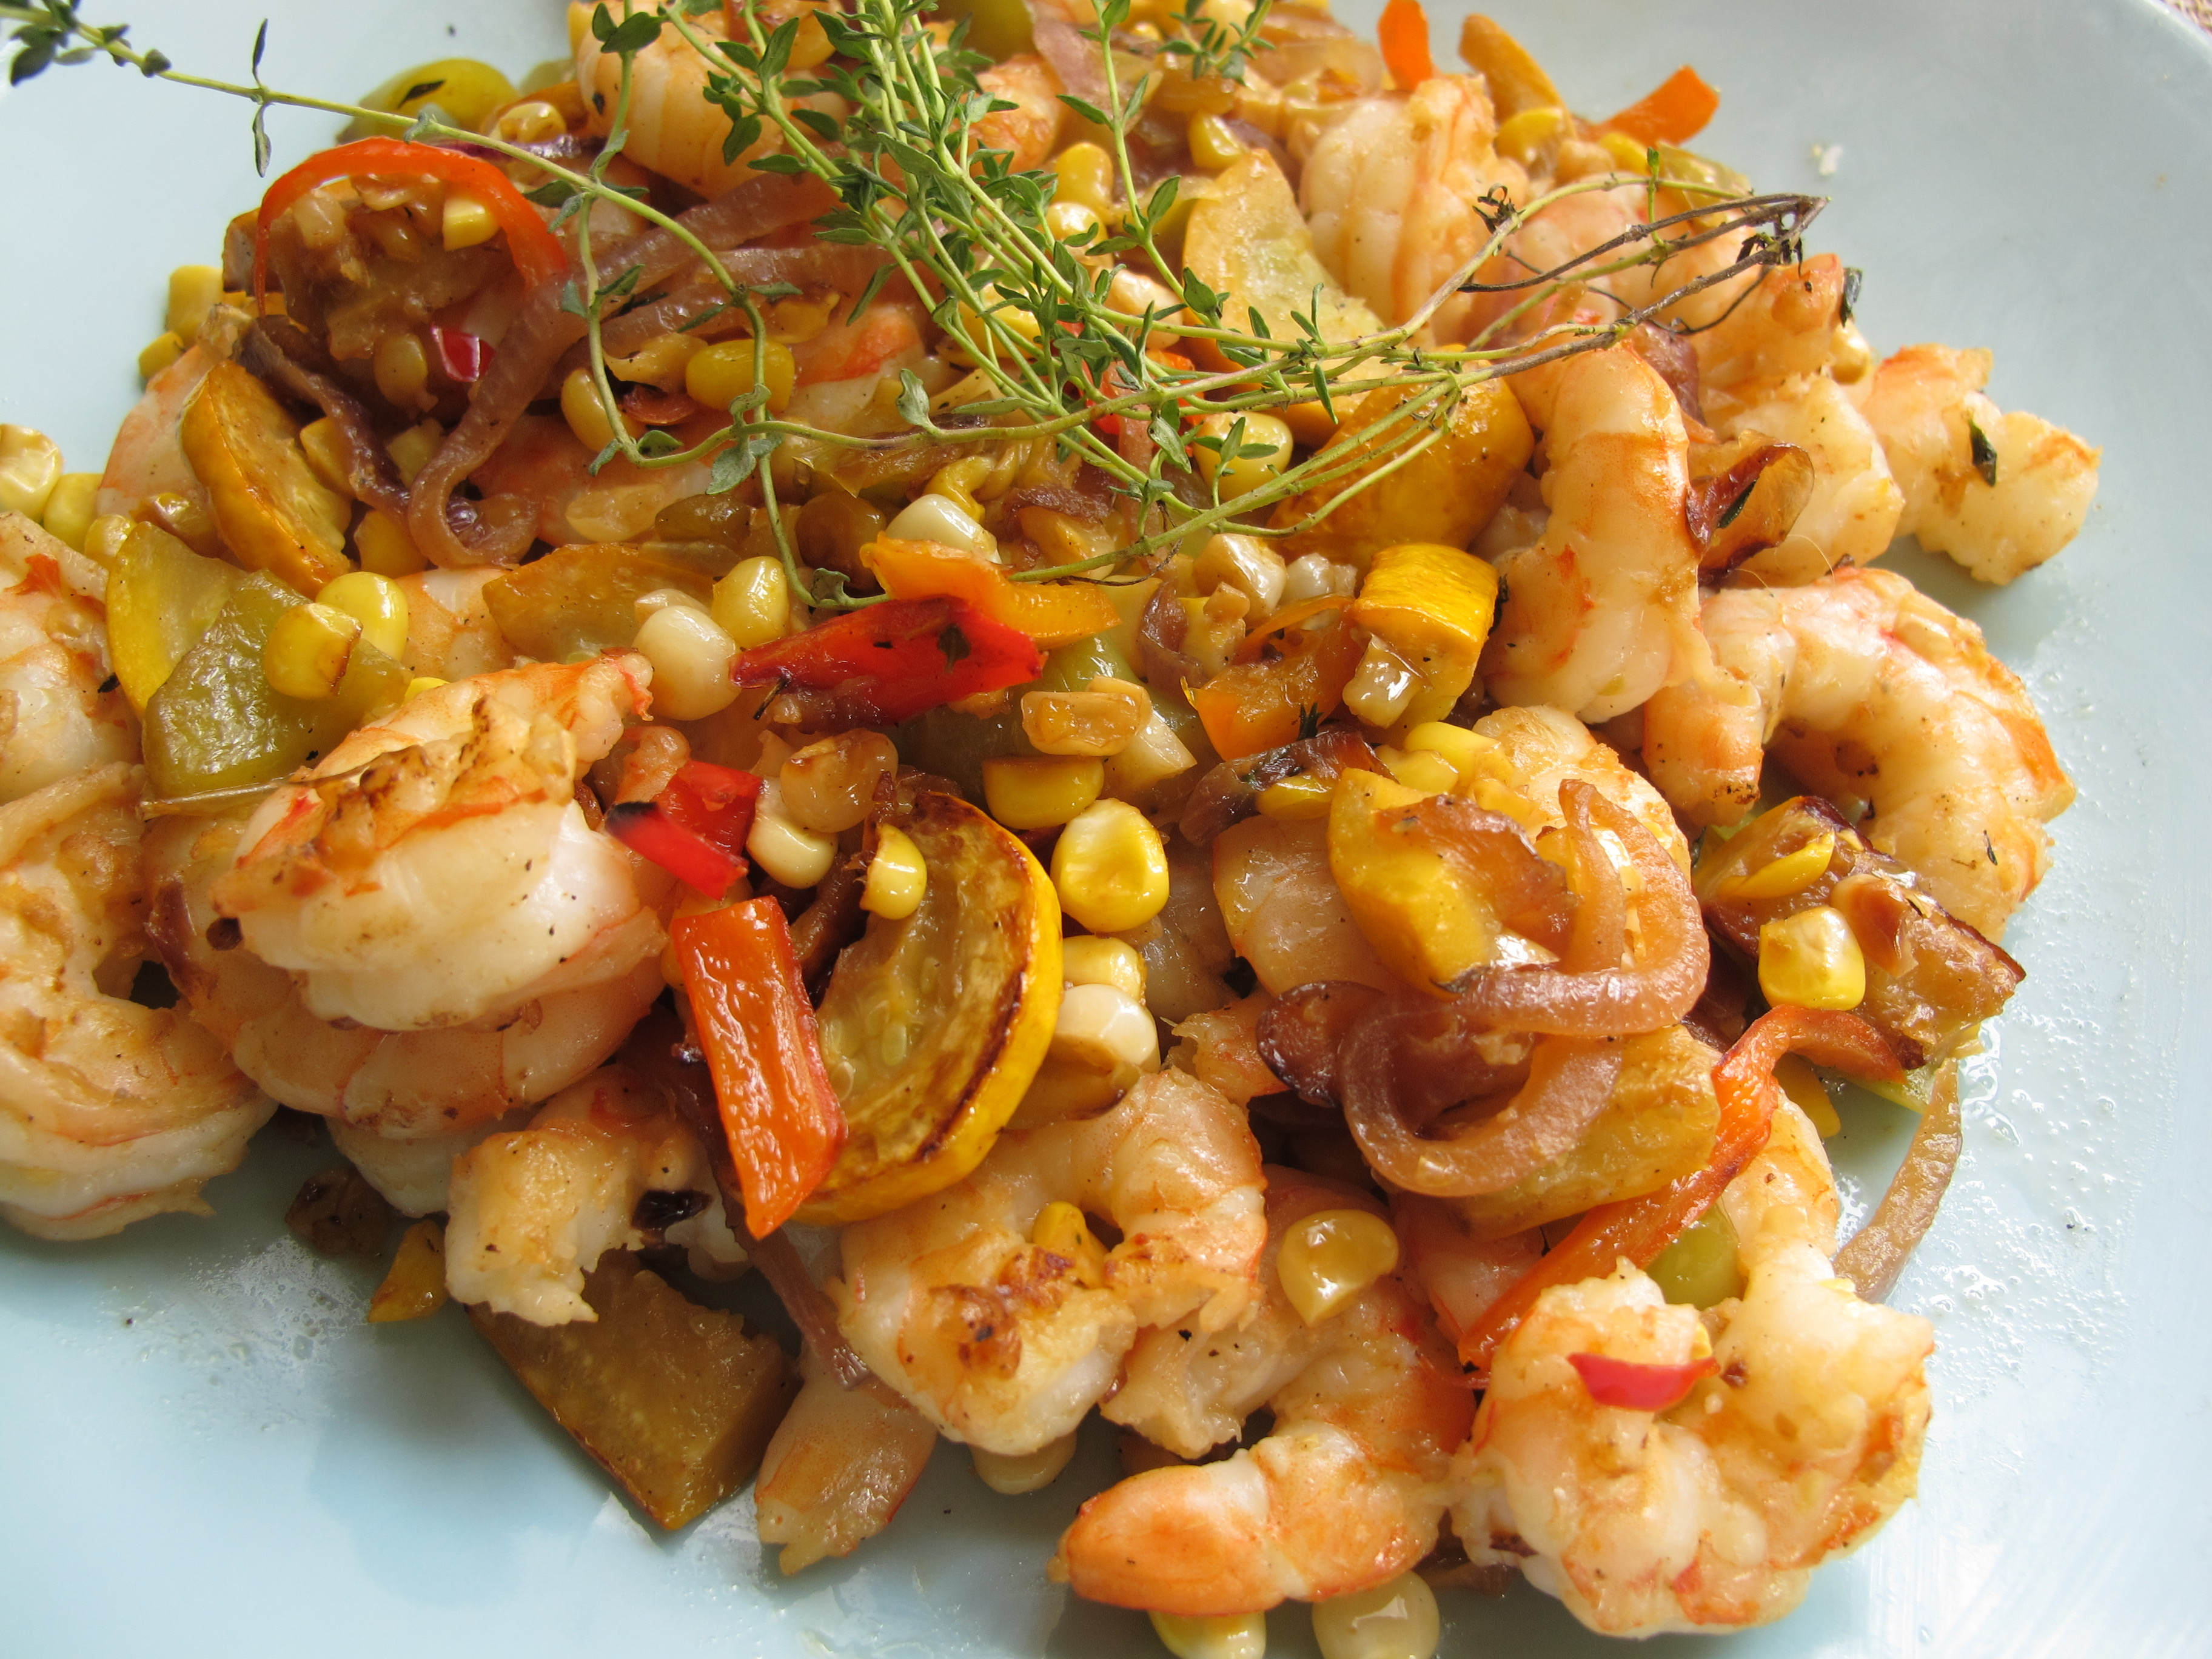 Big Fat Healthy Shrimp Recipes with corn from Spinach Tiger